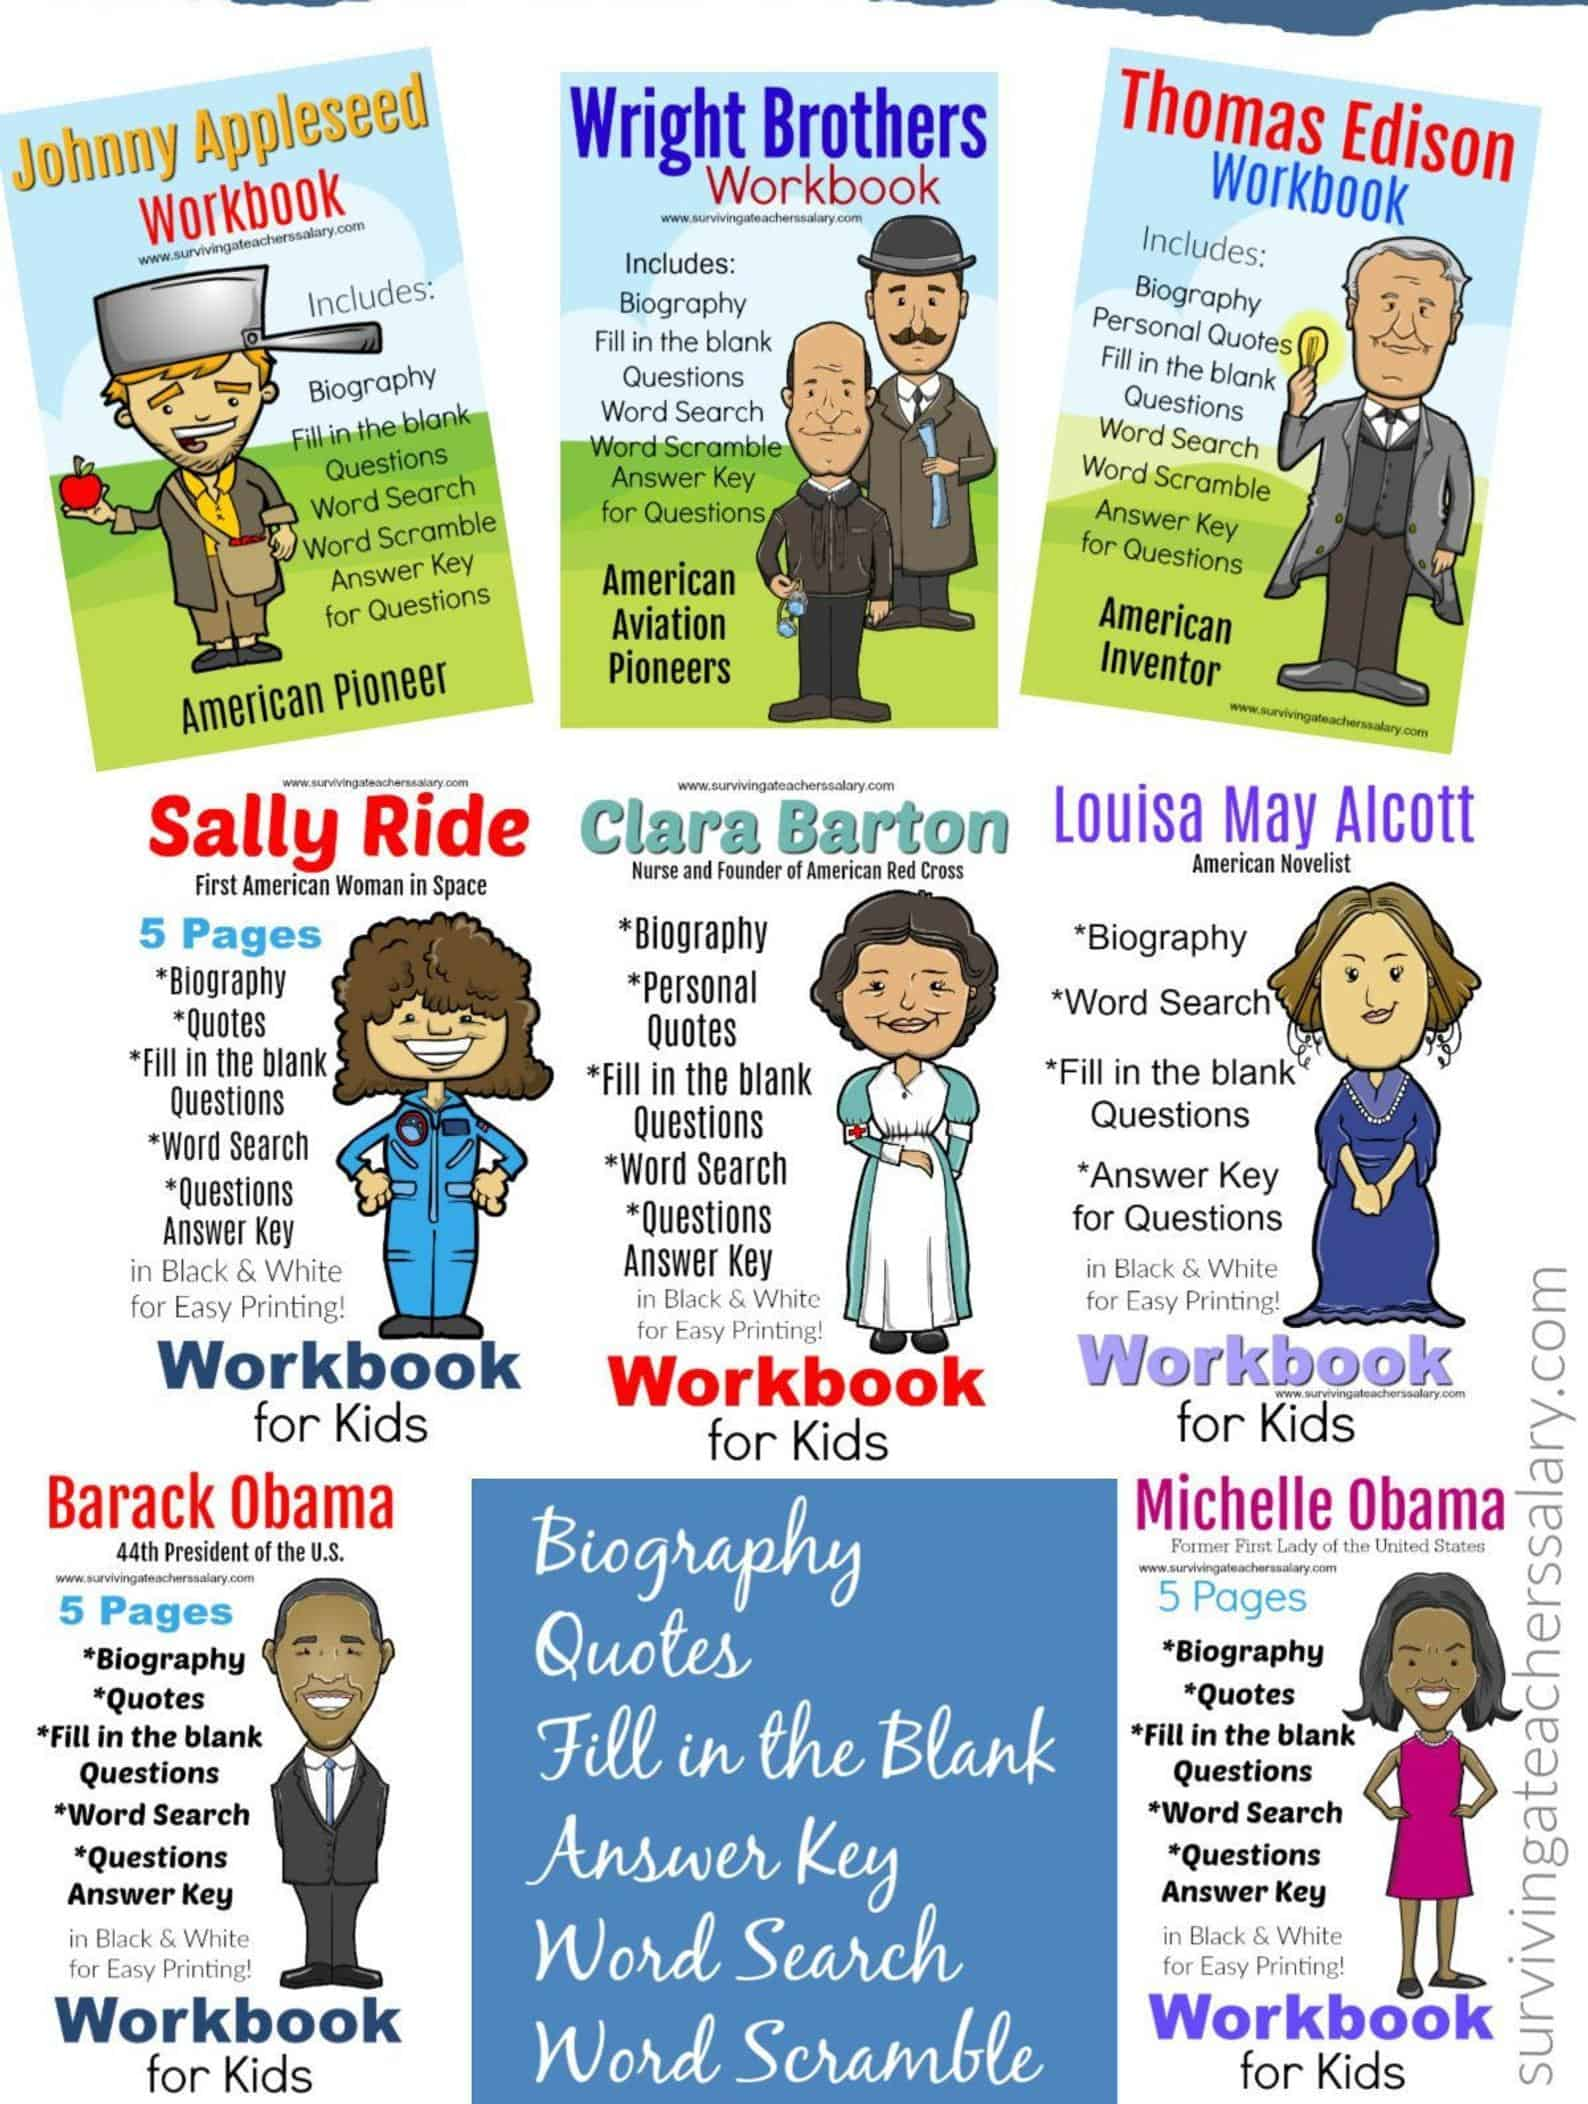 11 Famous People In History Workbook